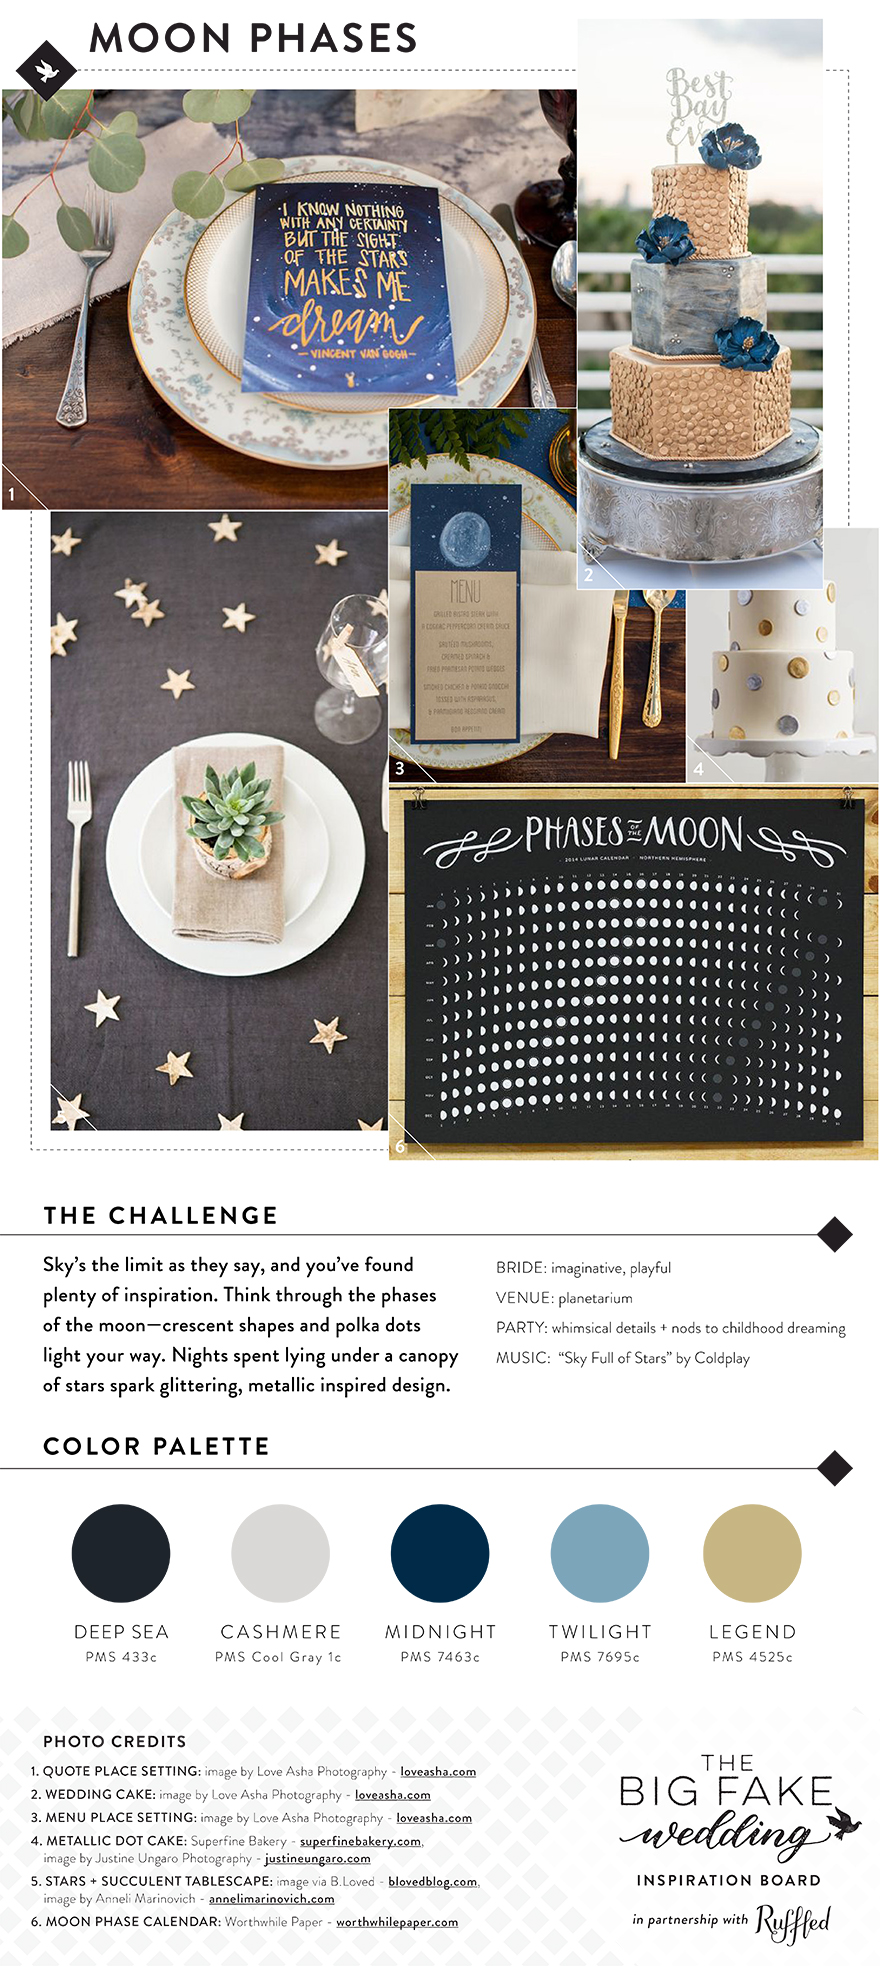 moon phases wedding inspiration board